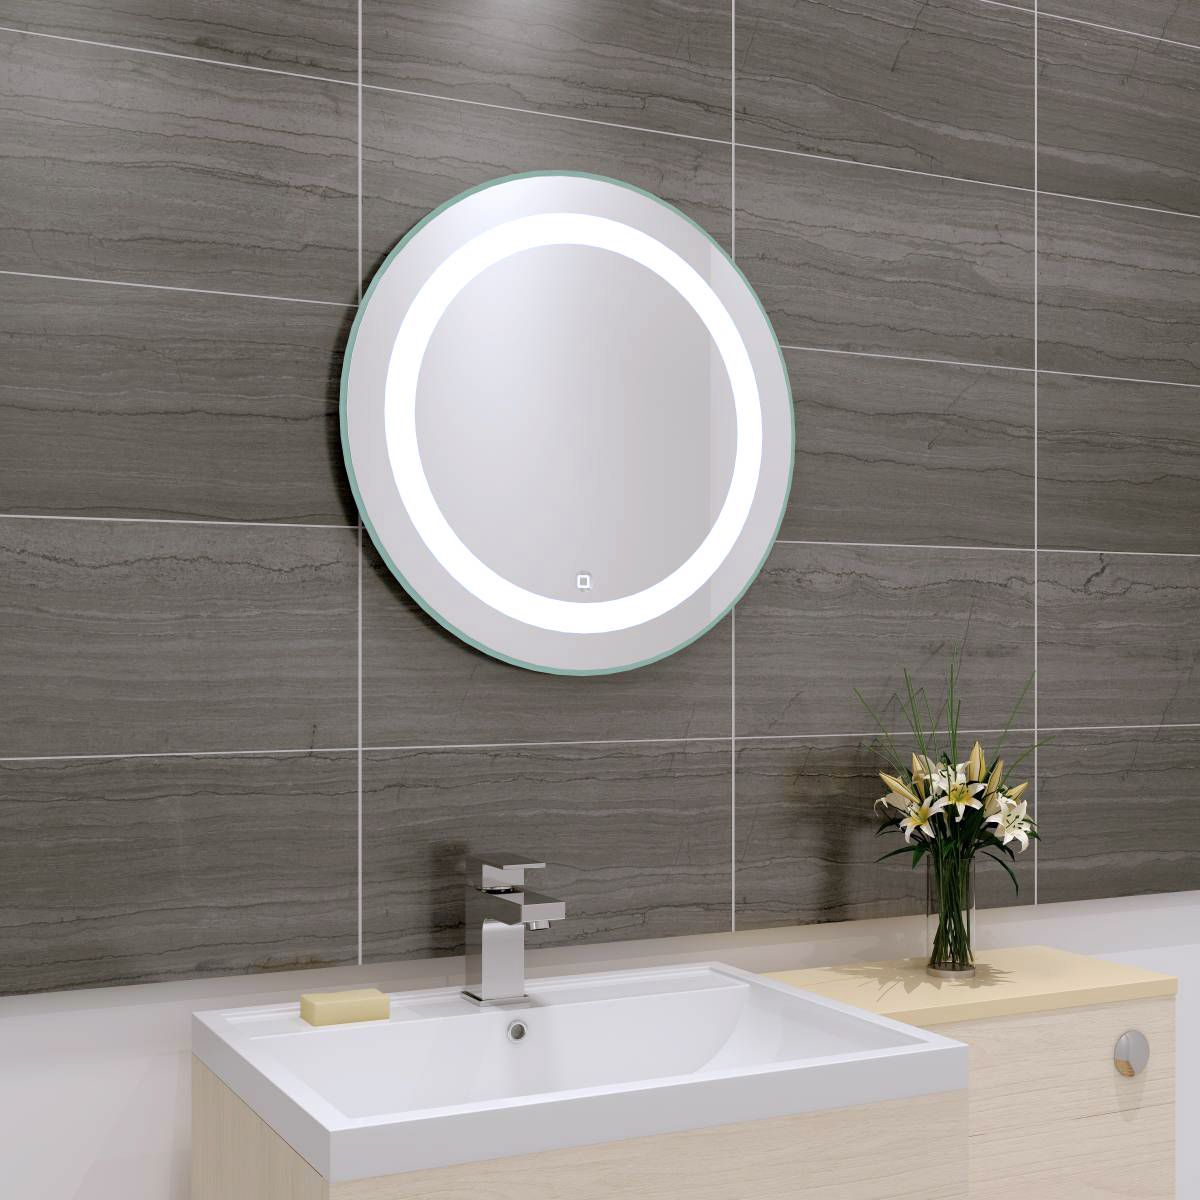 Round Mirrors Are Something A Little Different Led Mirror Bathroom Mirror Bathroom Mirror